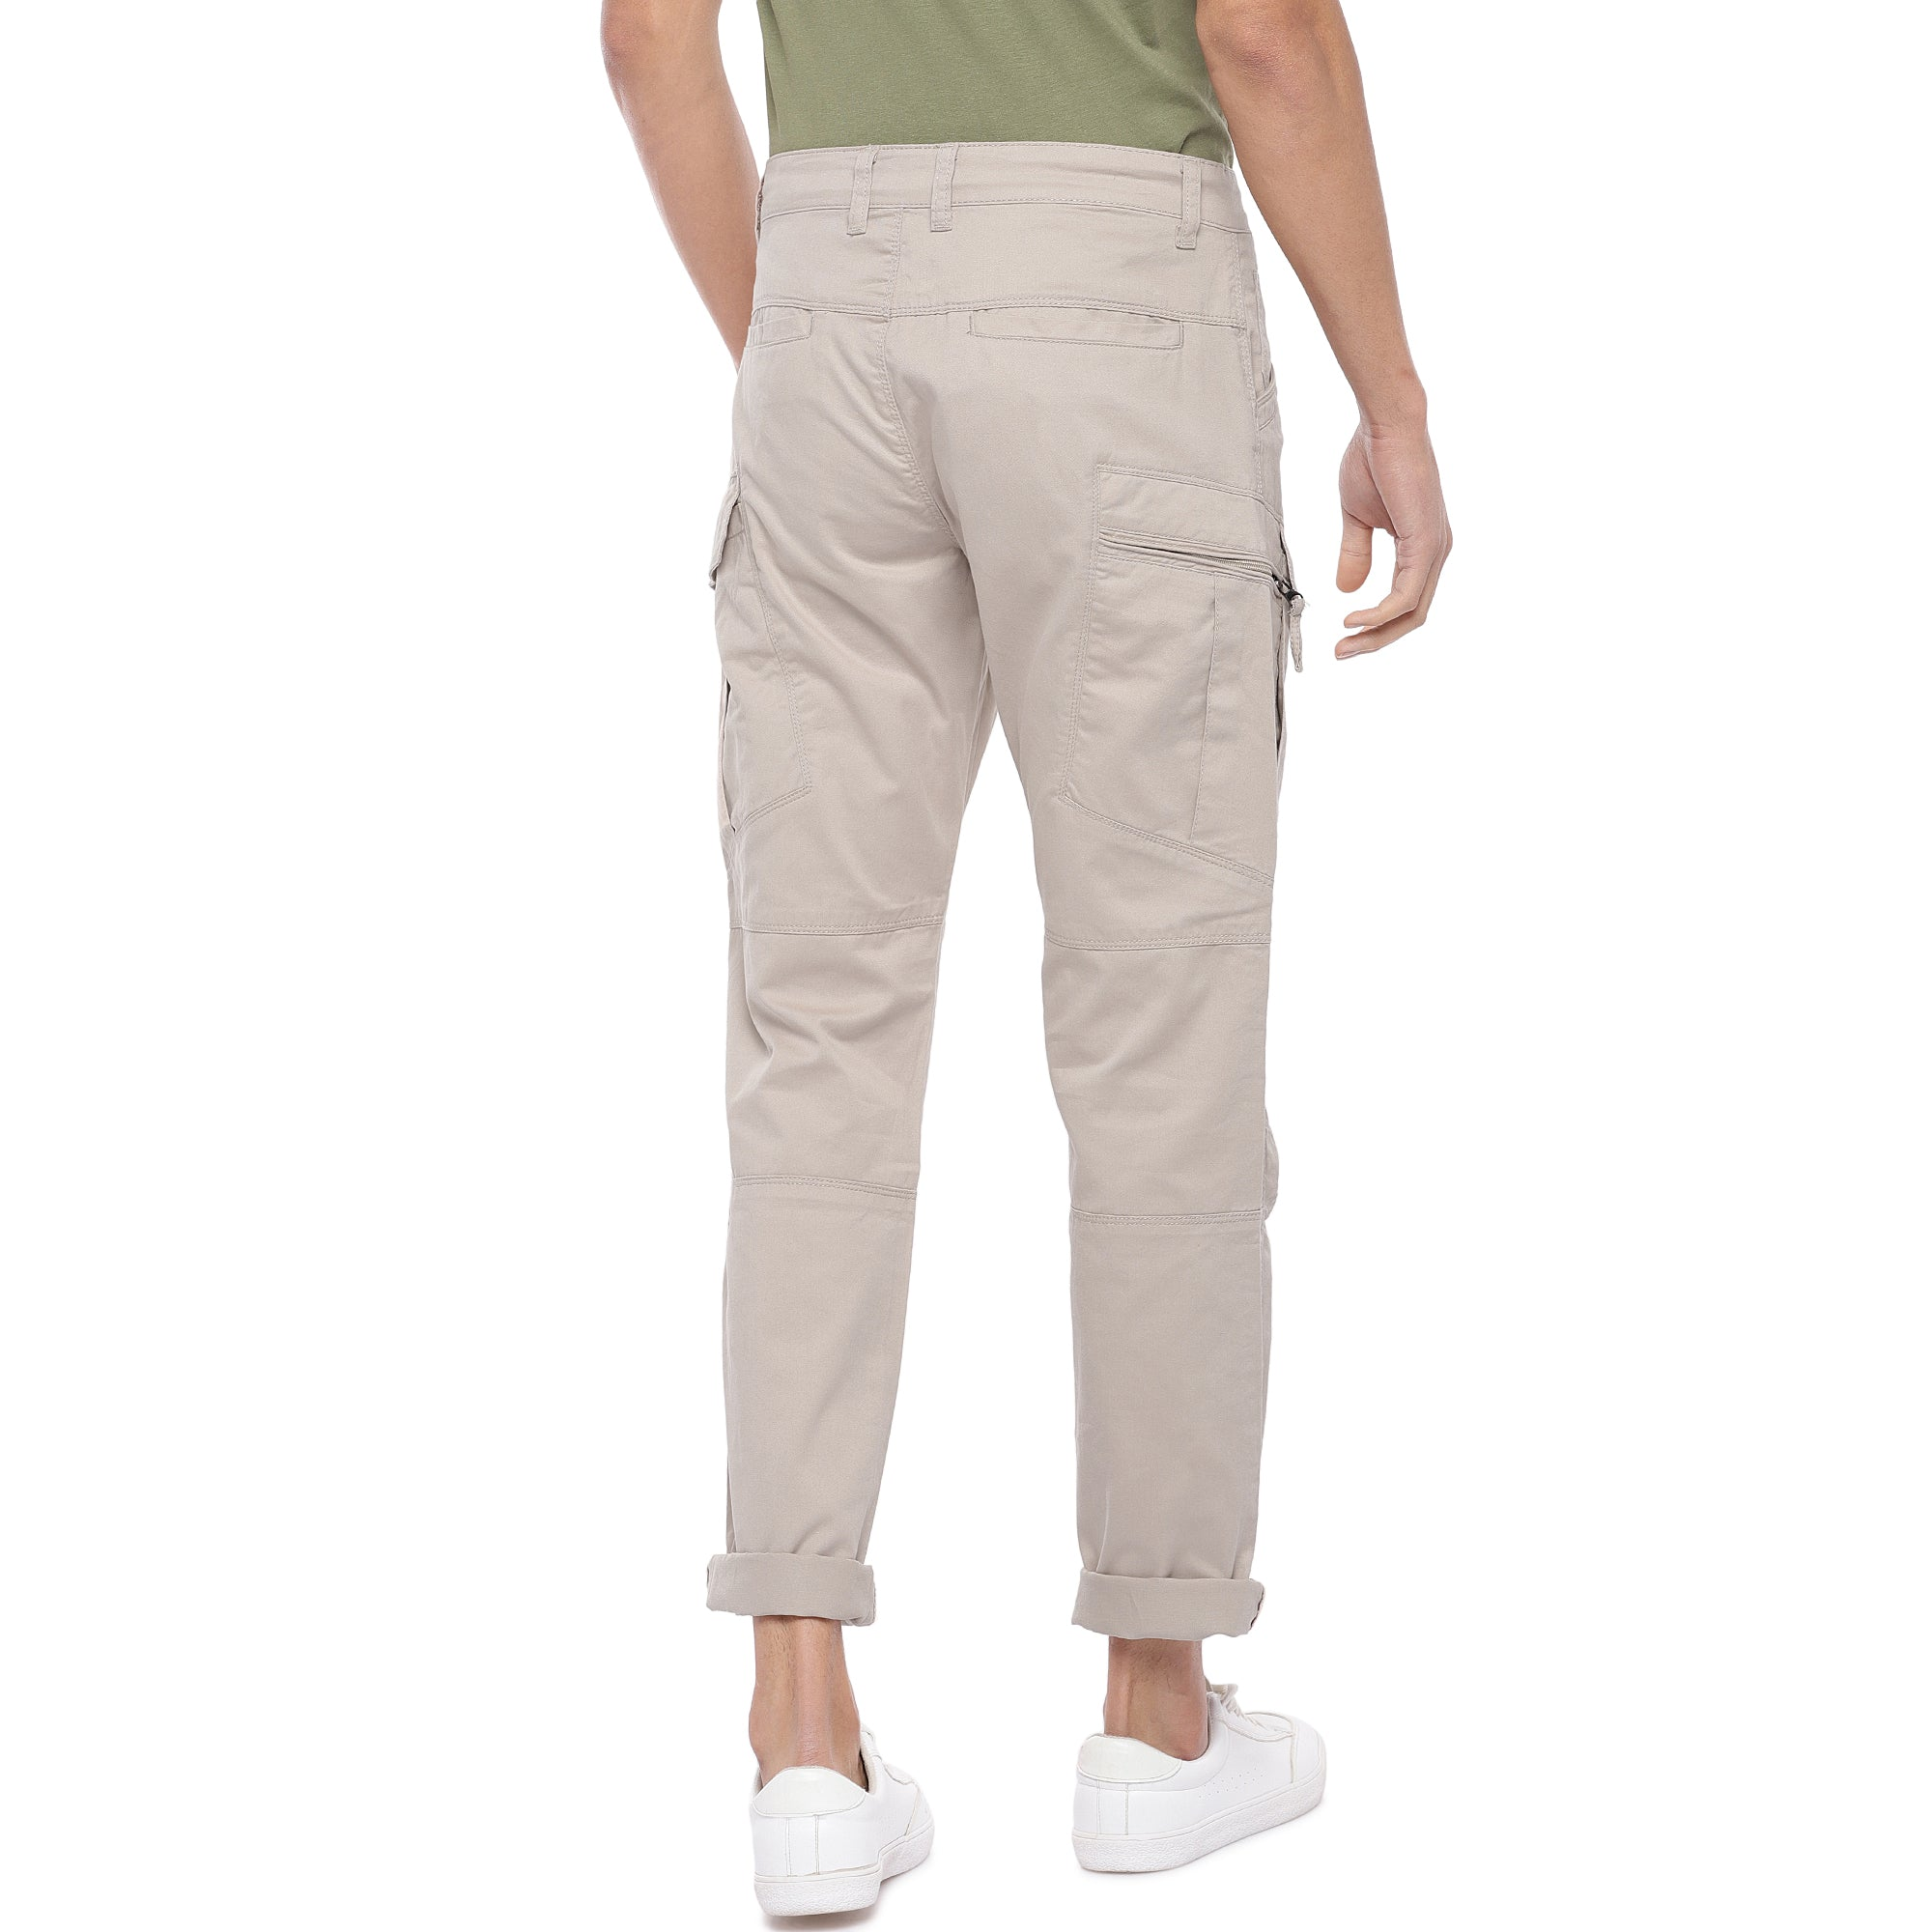 Beige Solid Slim Fit Cargos-3